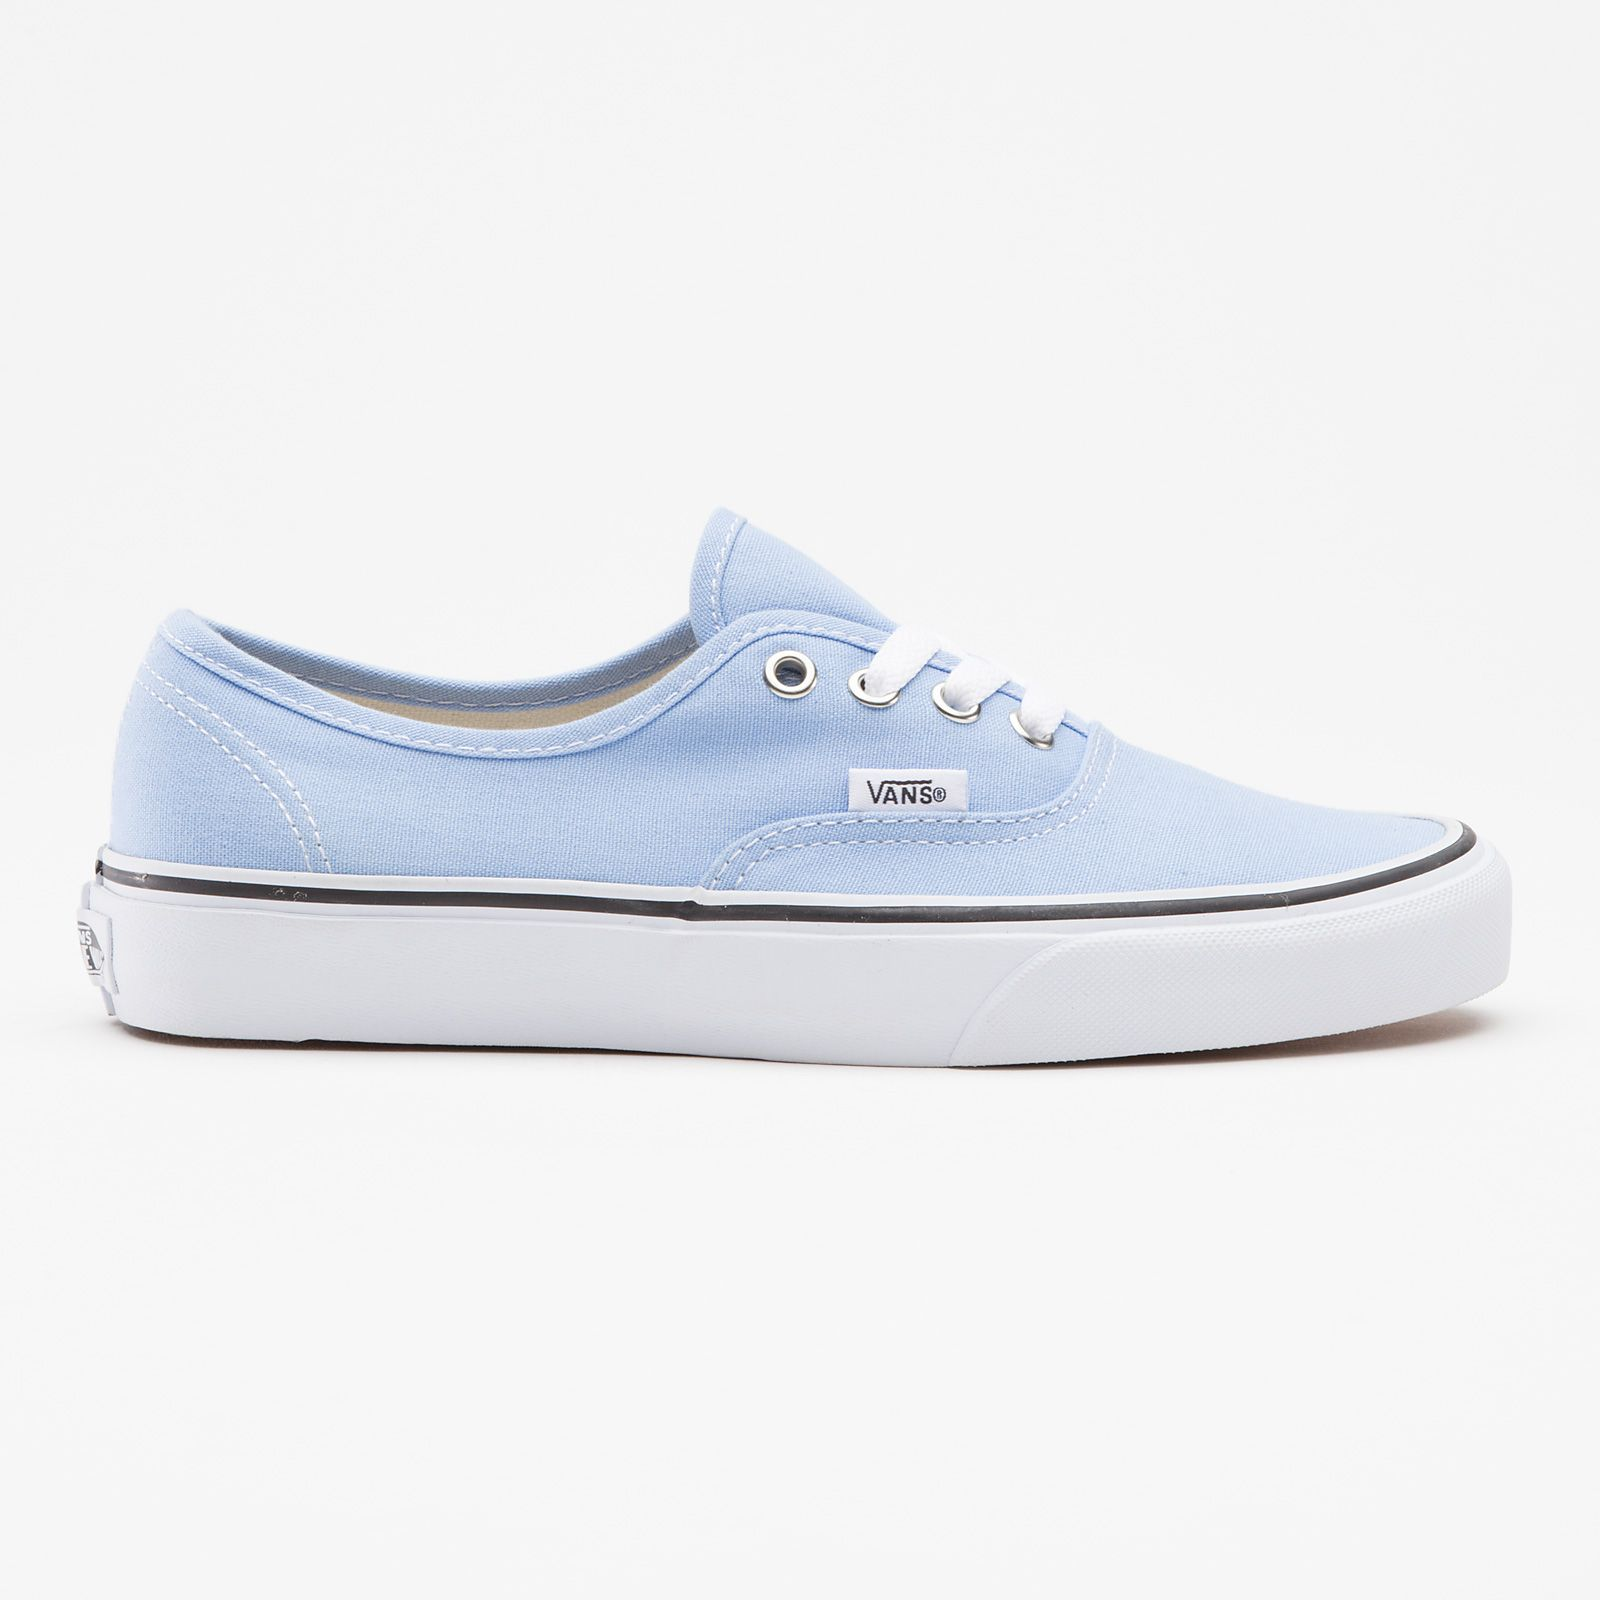 Periwinkle Canvas Authentic VANS.i love these even more than